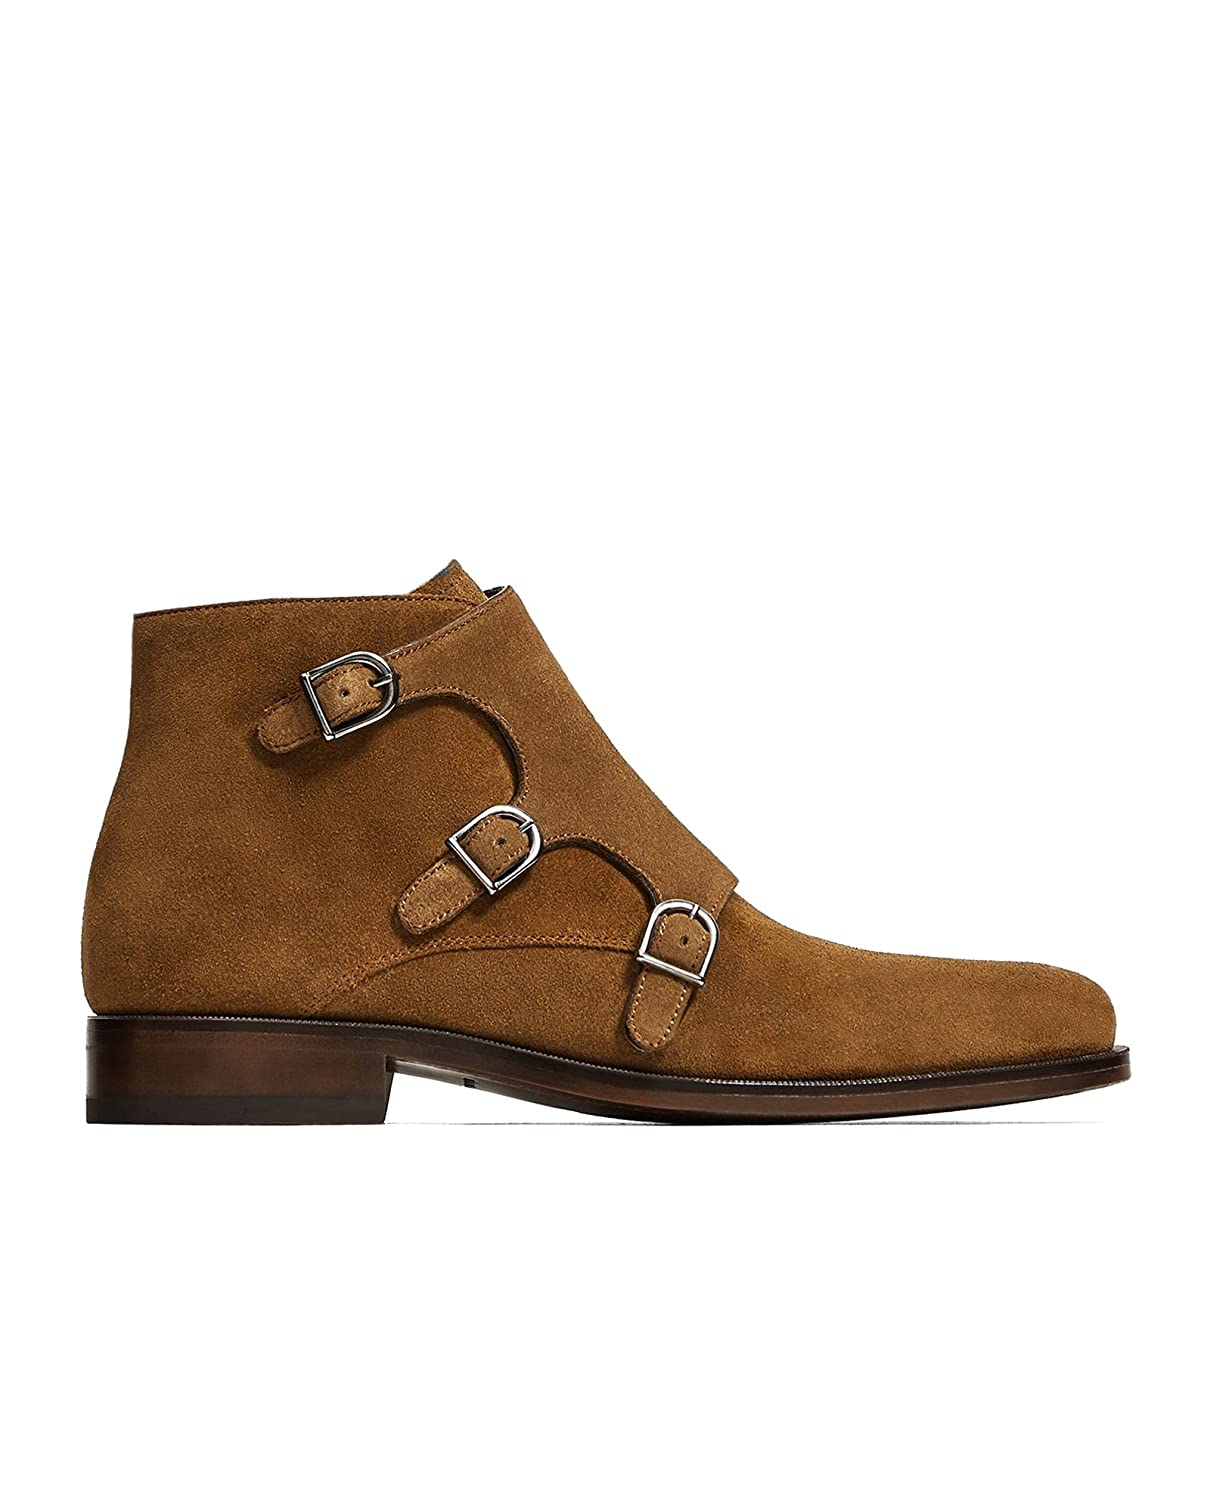 25783bb76c7cd Zara Men Brown leather buckled ankle boots 5631/202 (45 EU | 12 US | 11  UK): Amazon.ca: Clothing & Accessories